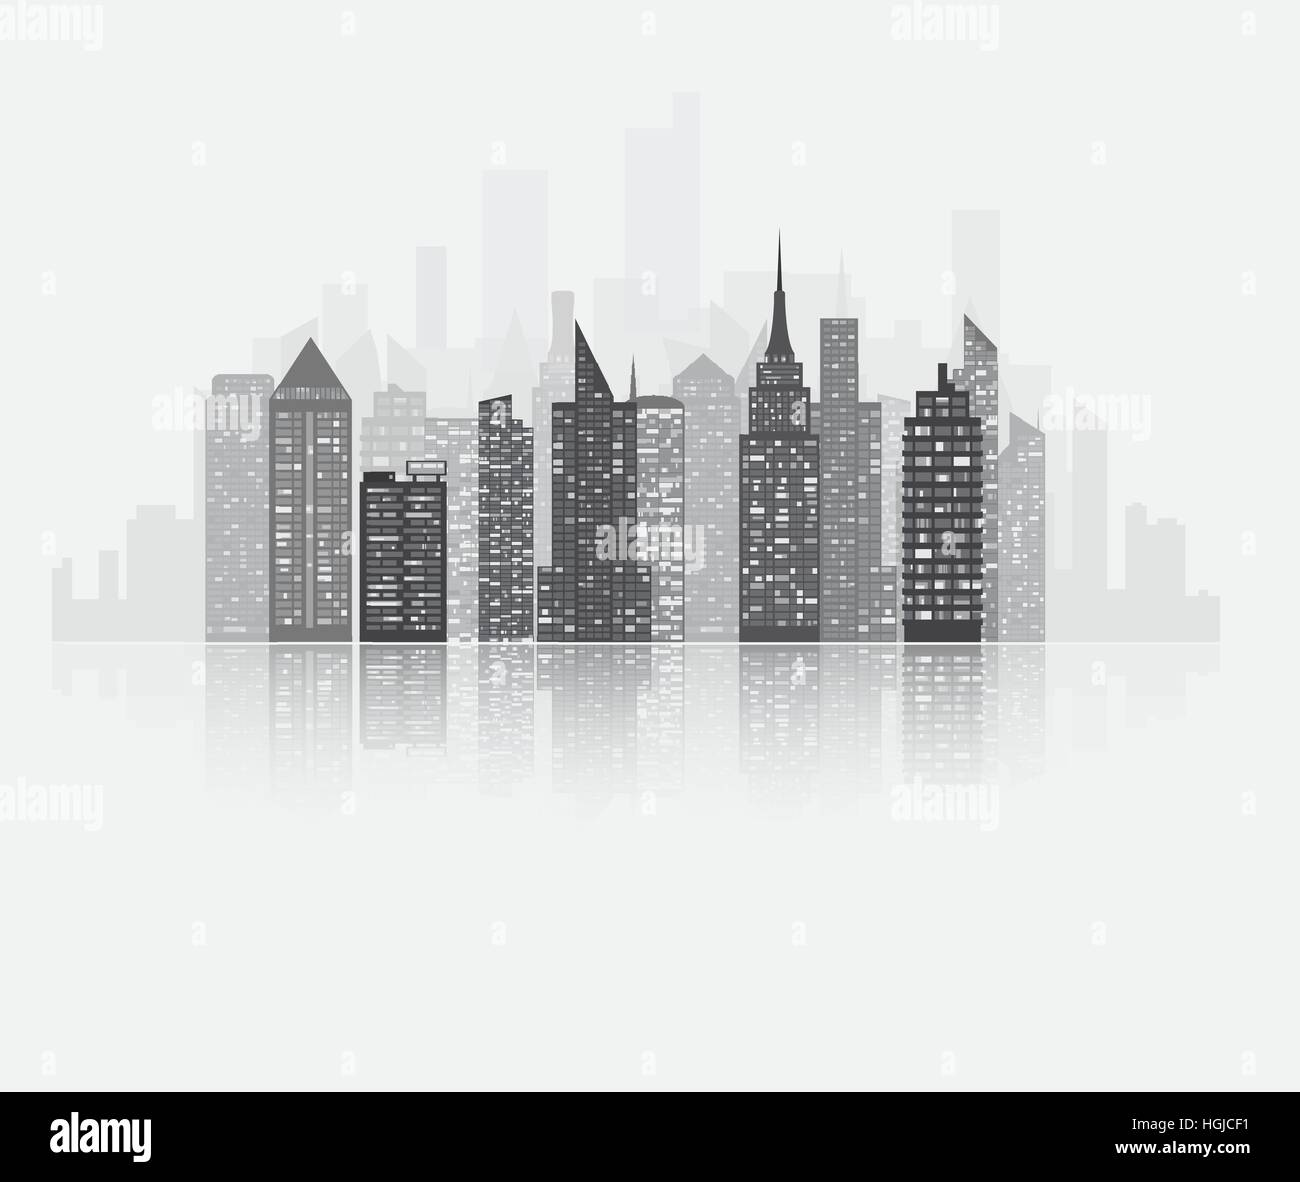 Realistic detailed urban view with skyscrapers. Plenty of bigg skyscrapers with many glowing in the night windows. - Stock Vector